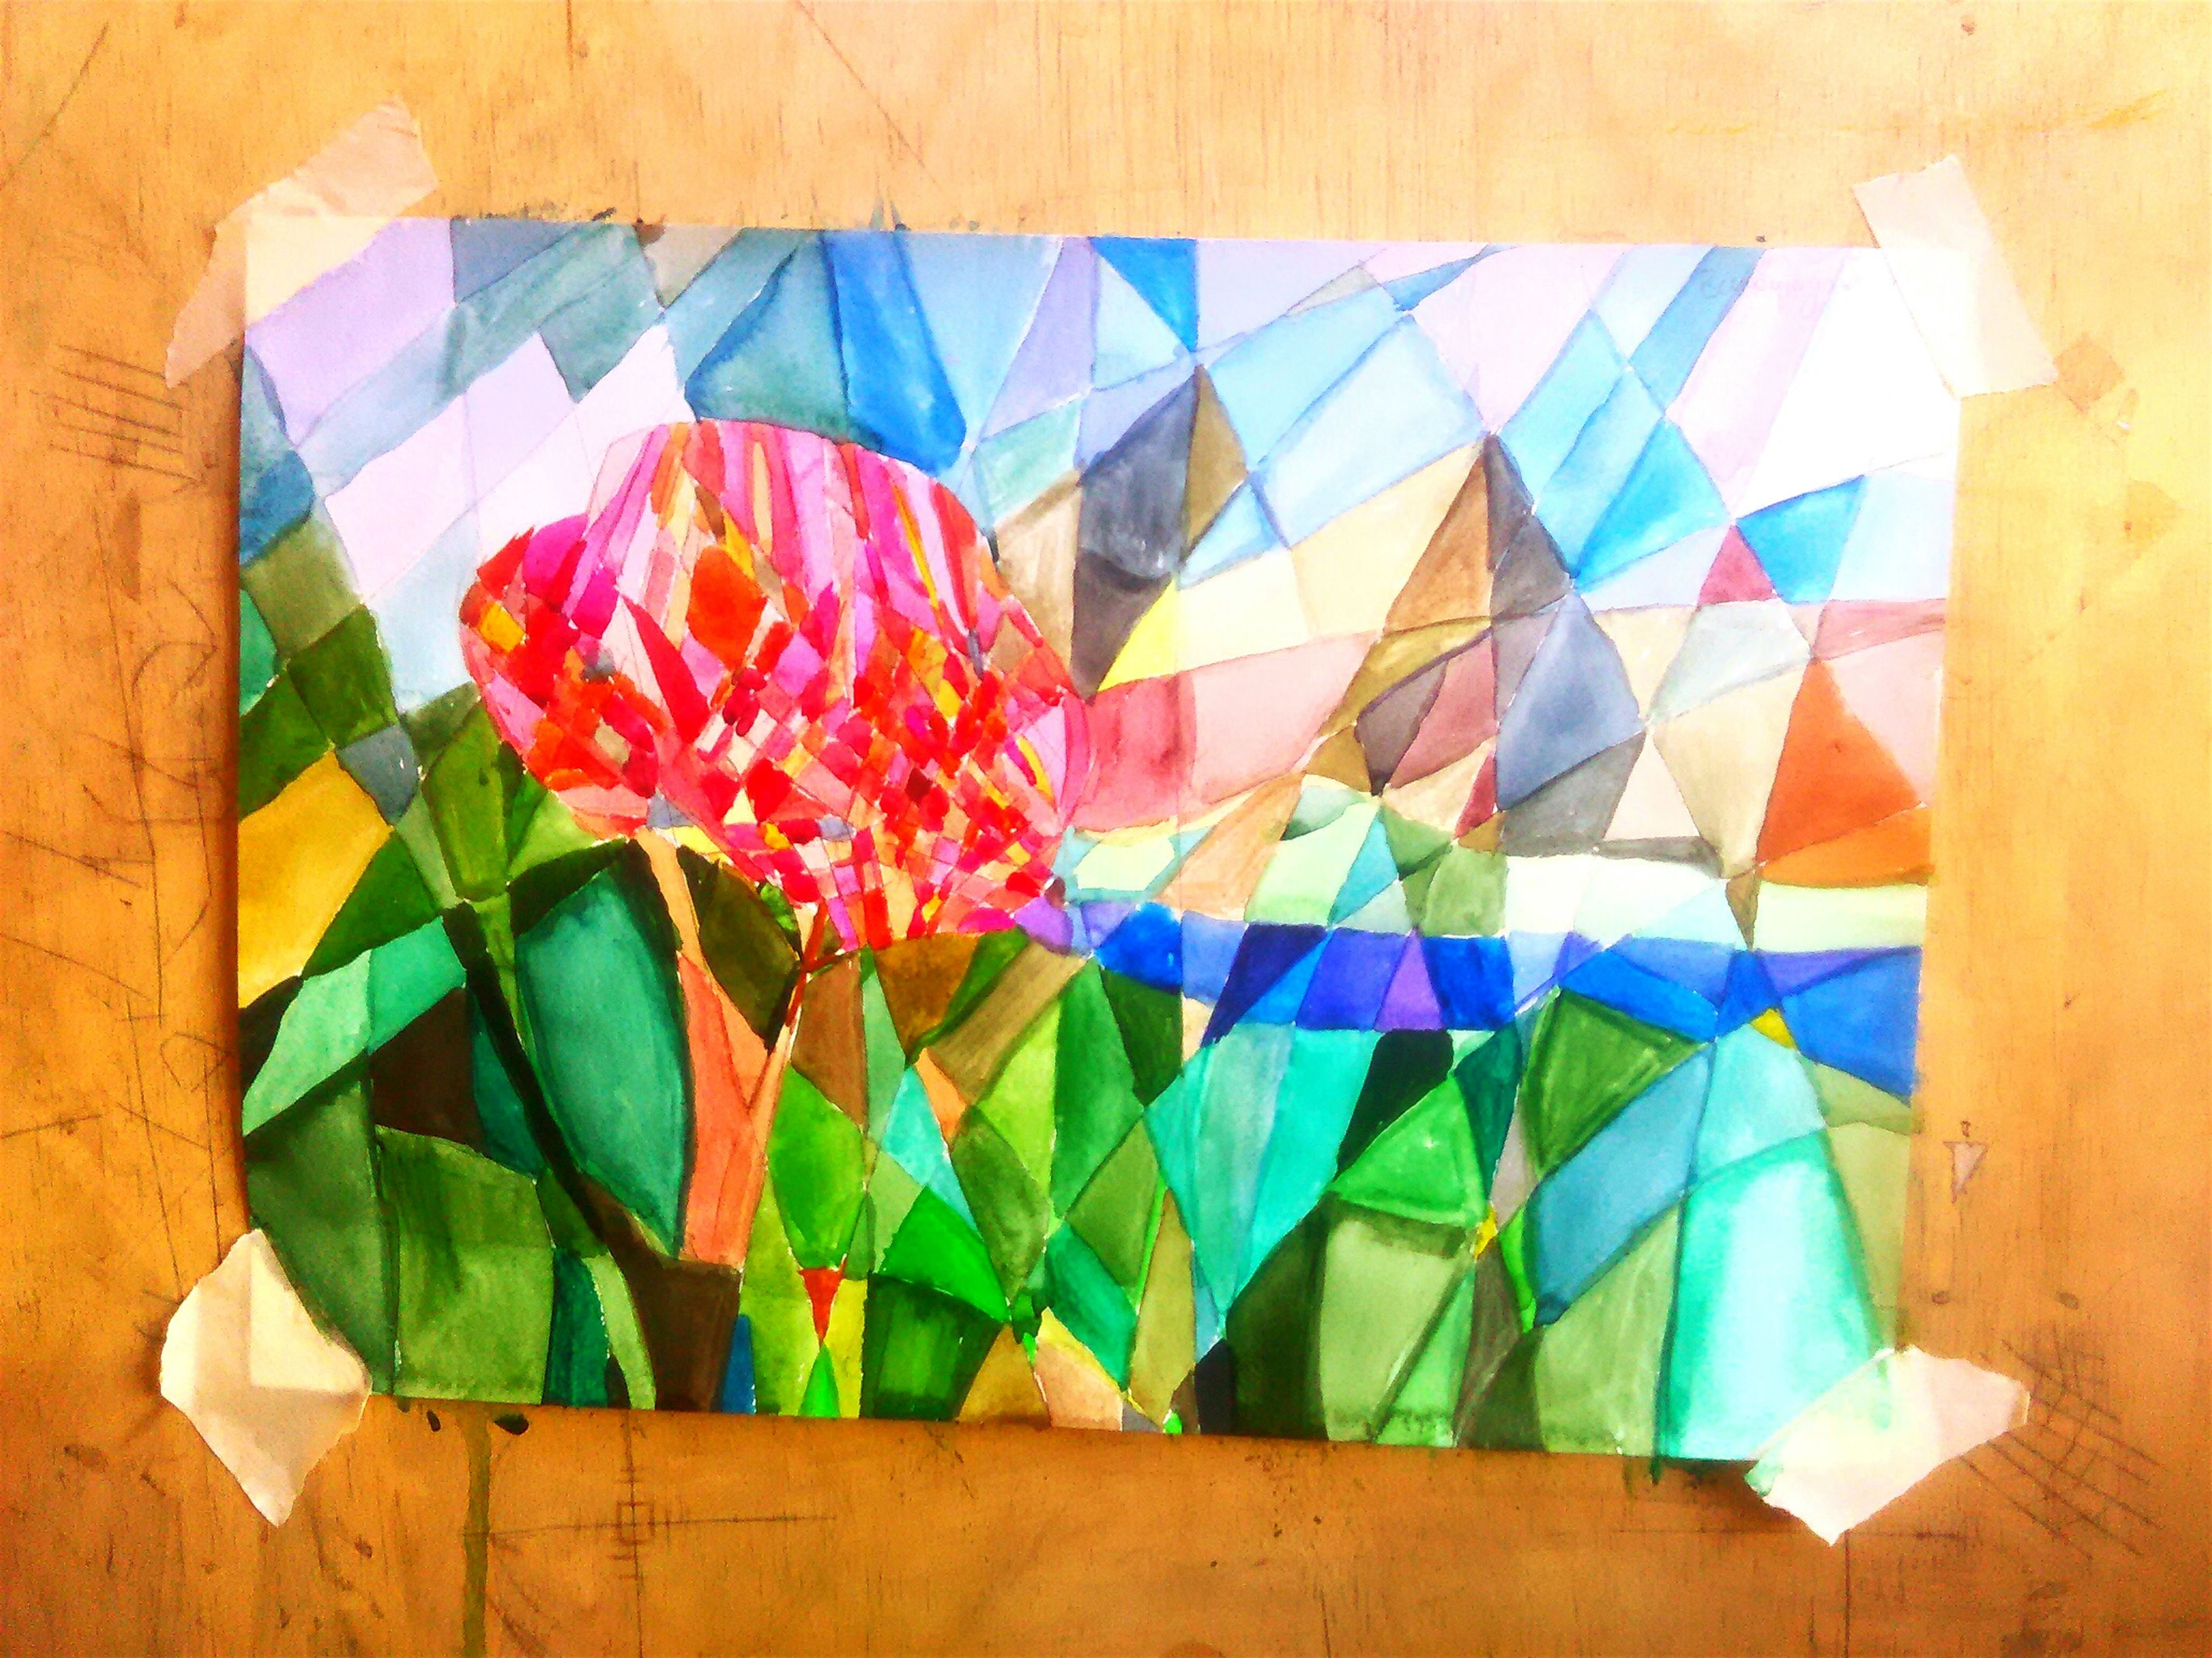 multi colored, indoors, variation, still life, wall - building feature, colorful, blue, arrangement, no people, art and craft, creativity, table, large group of objects, close-up, high angle view, fabric, paper, wall, choice, flower